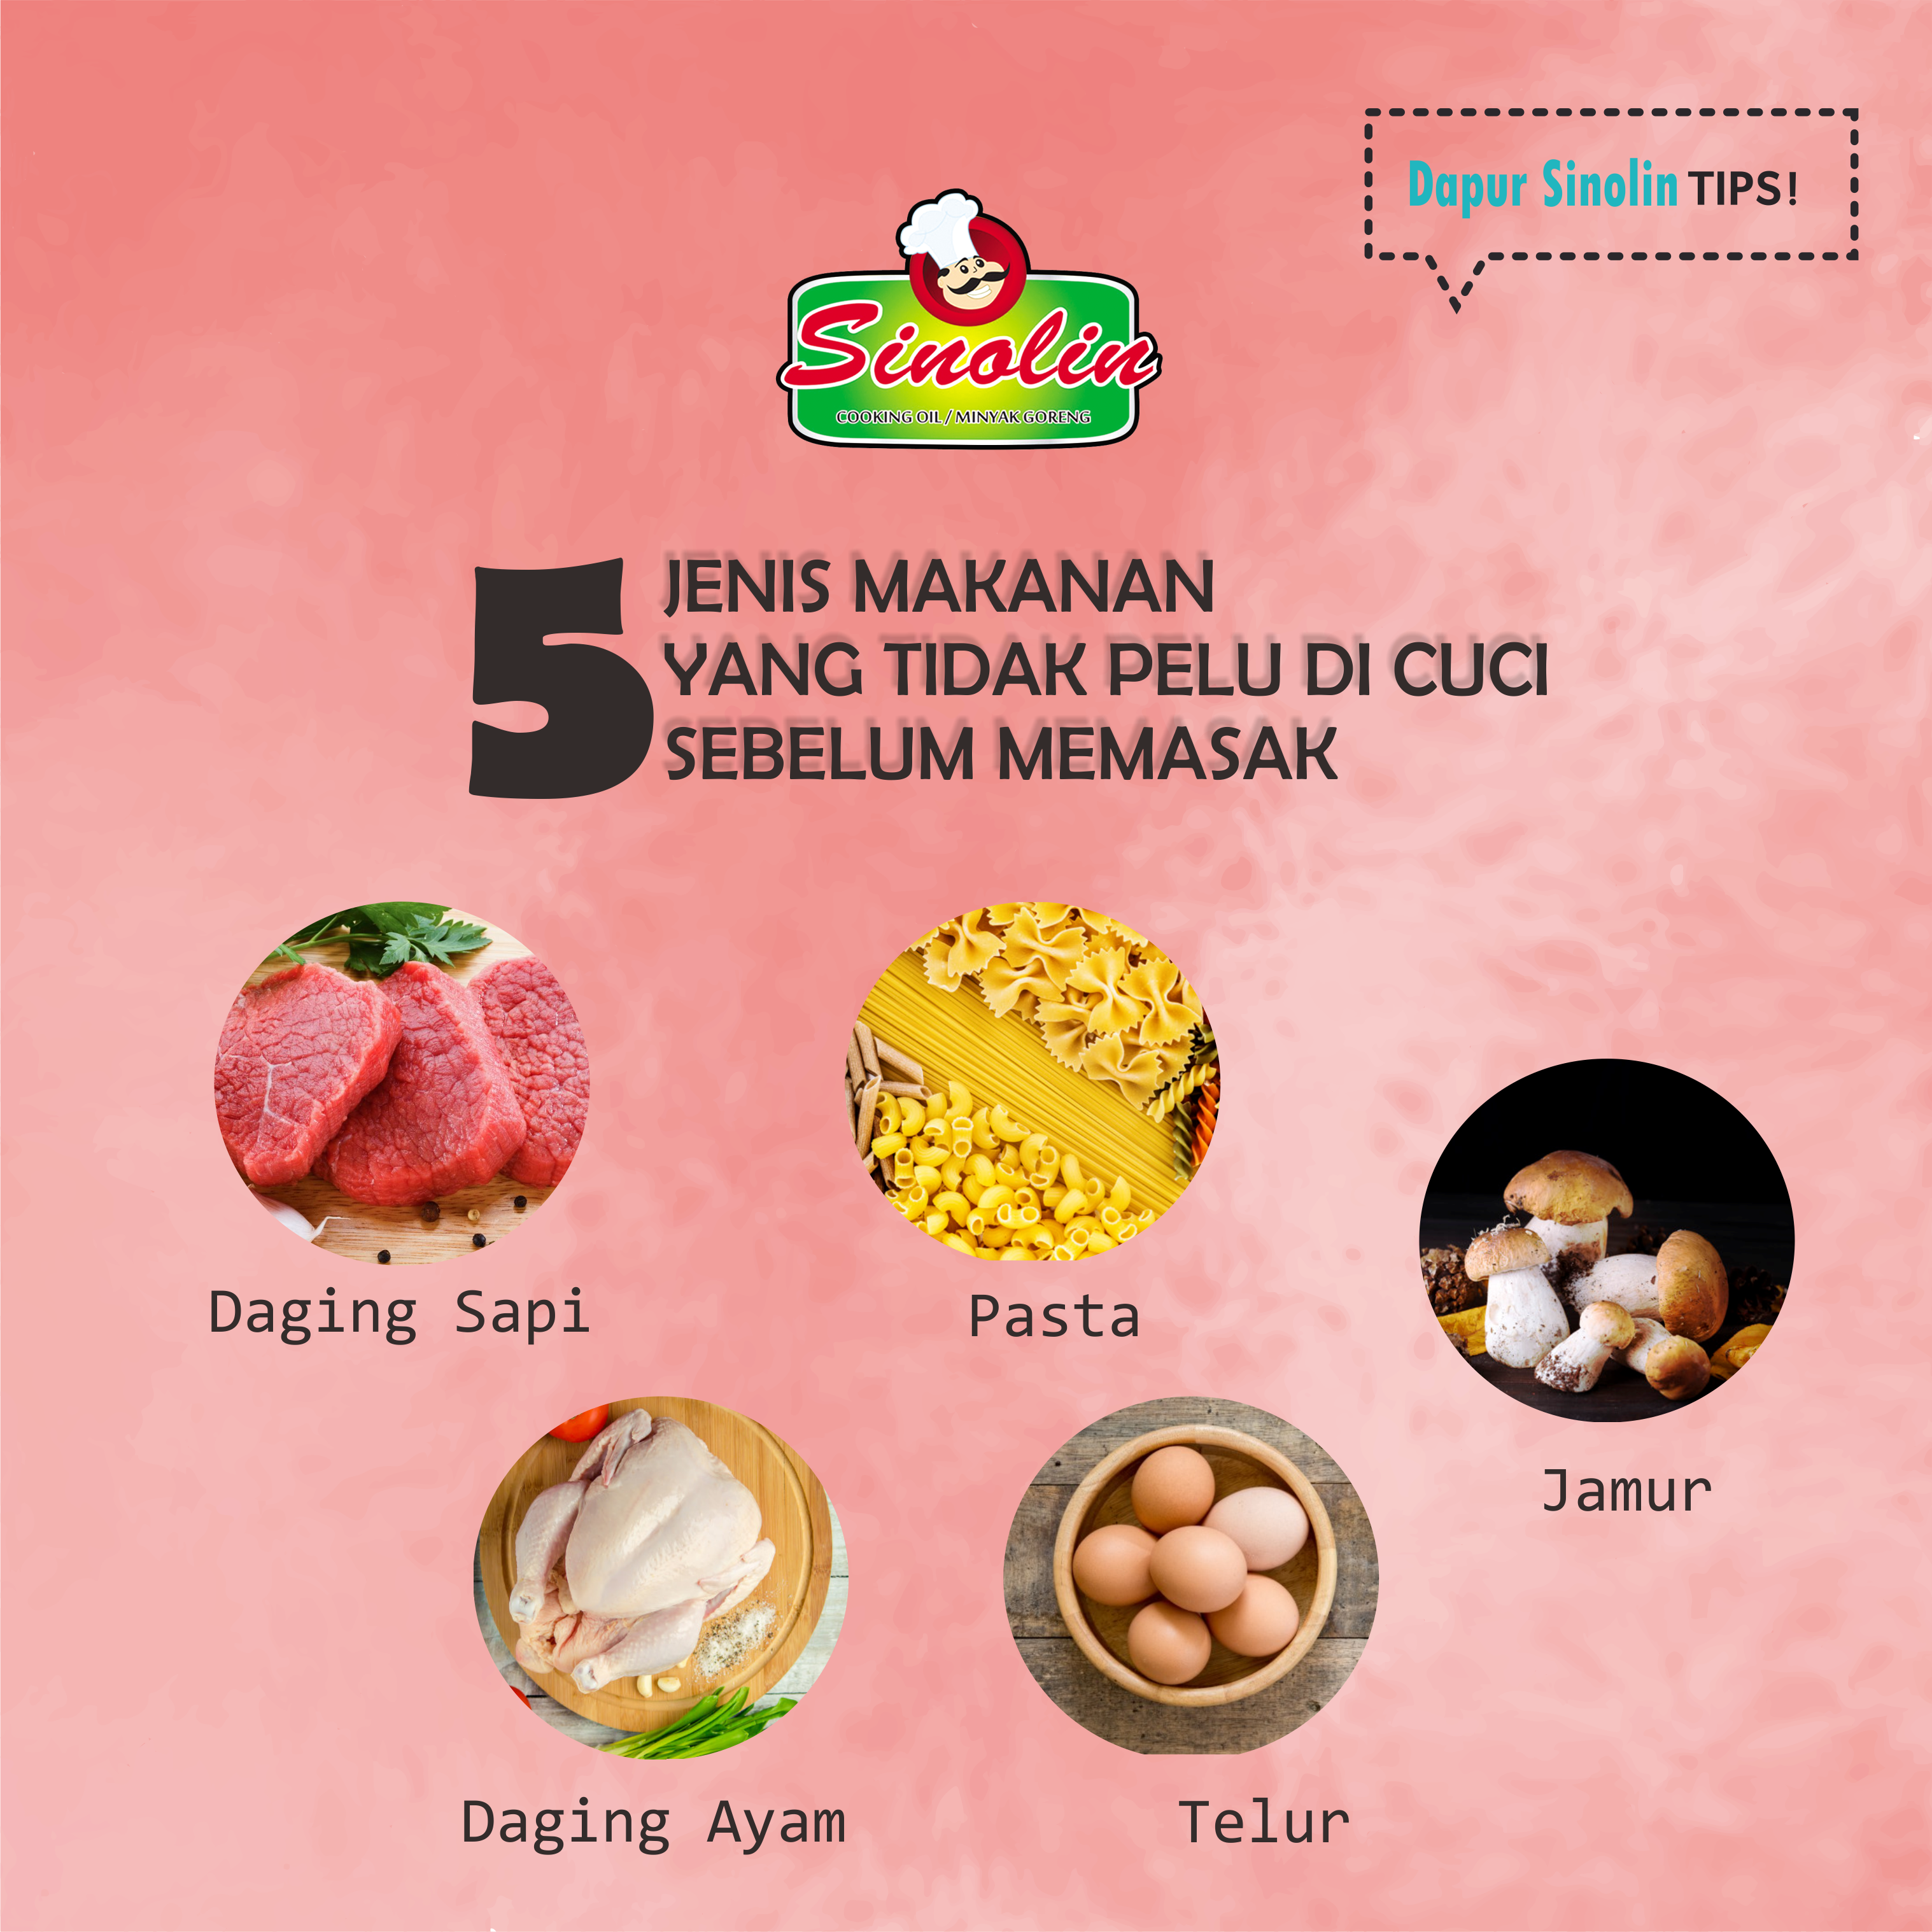 Info: Foods that do not need to be washed before cooking By Dapur Sinolin